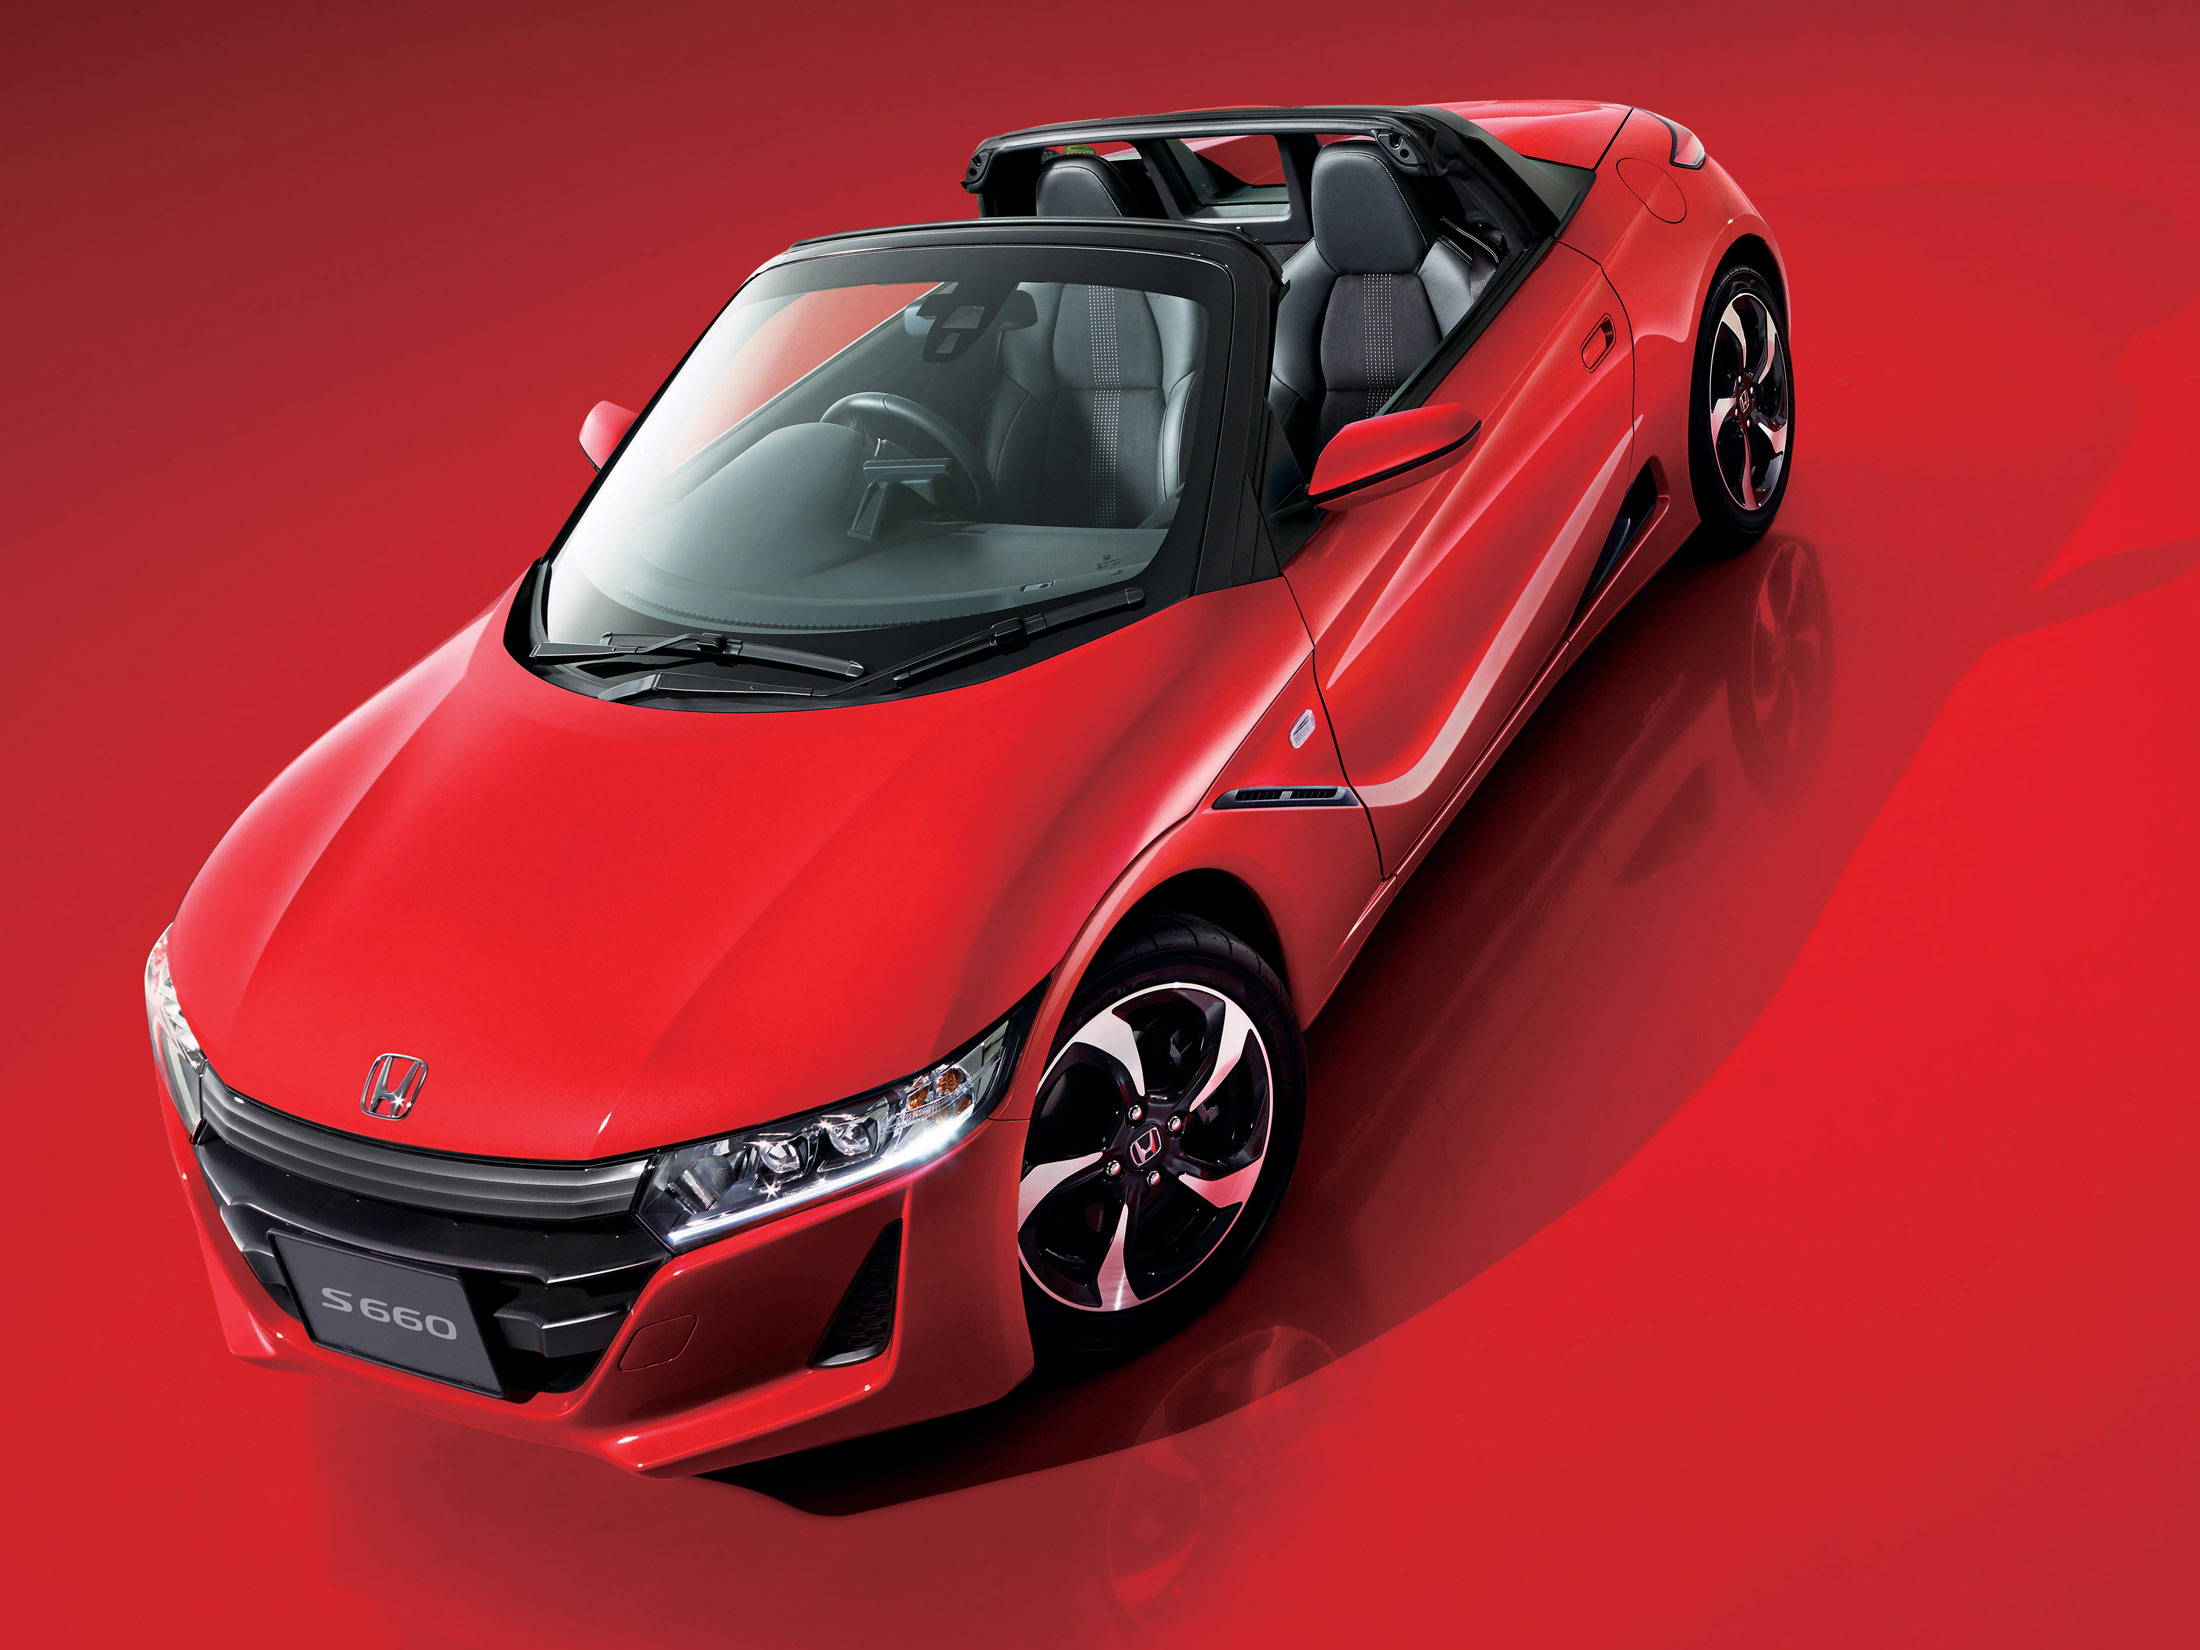 Meet the 26-Year-Old Design Prodigy Behind Honda's New ...